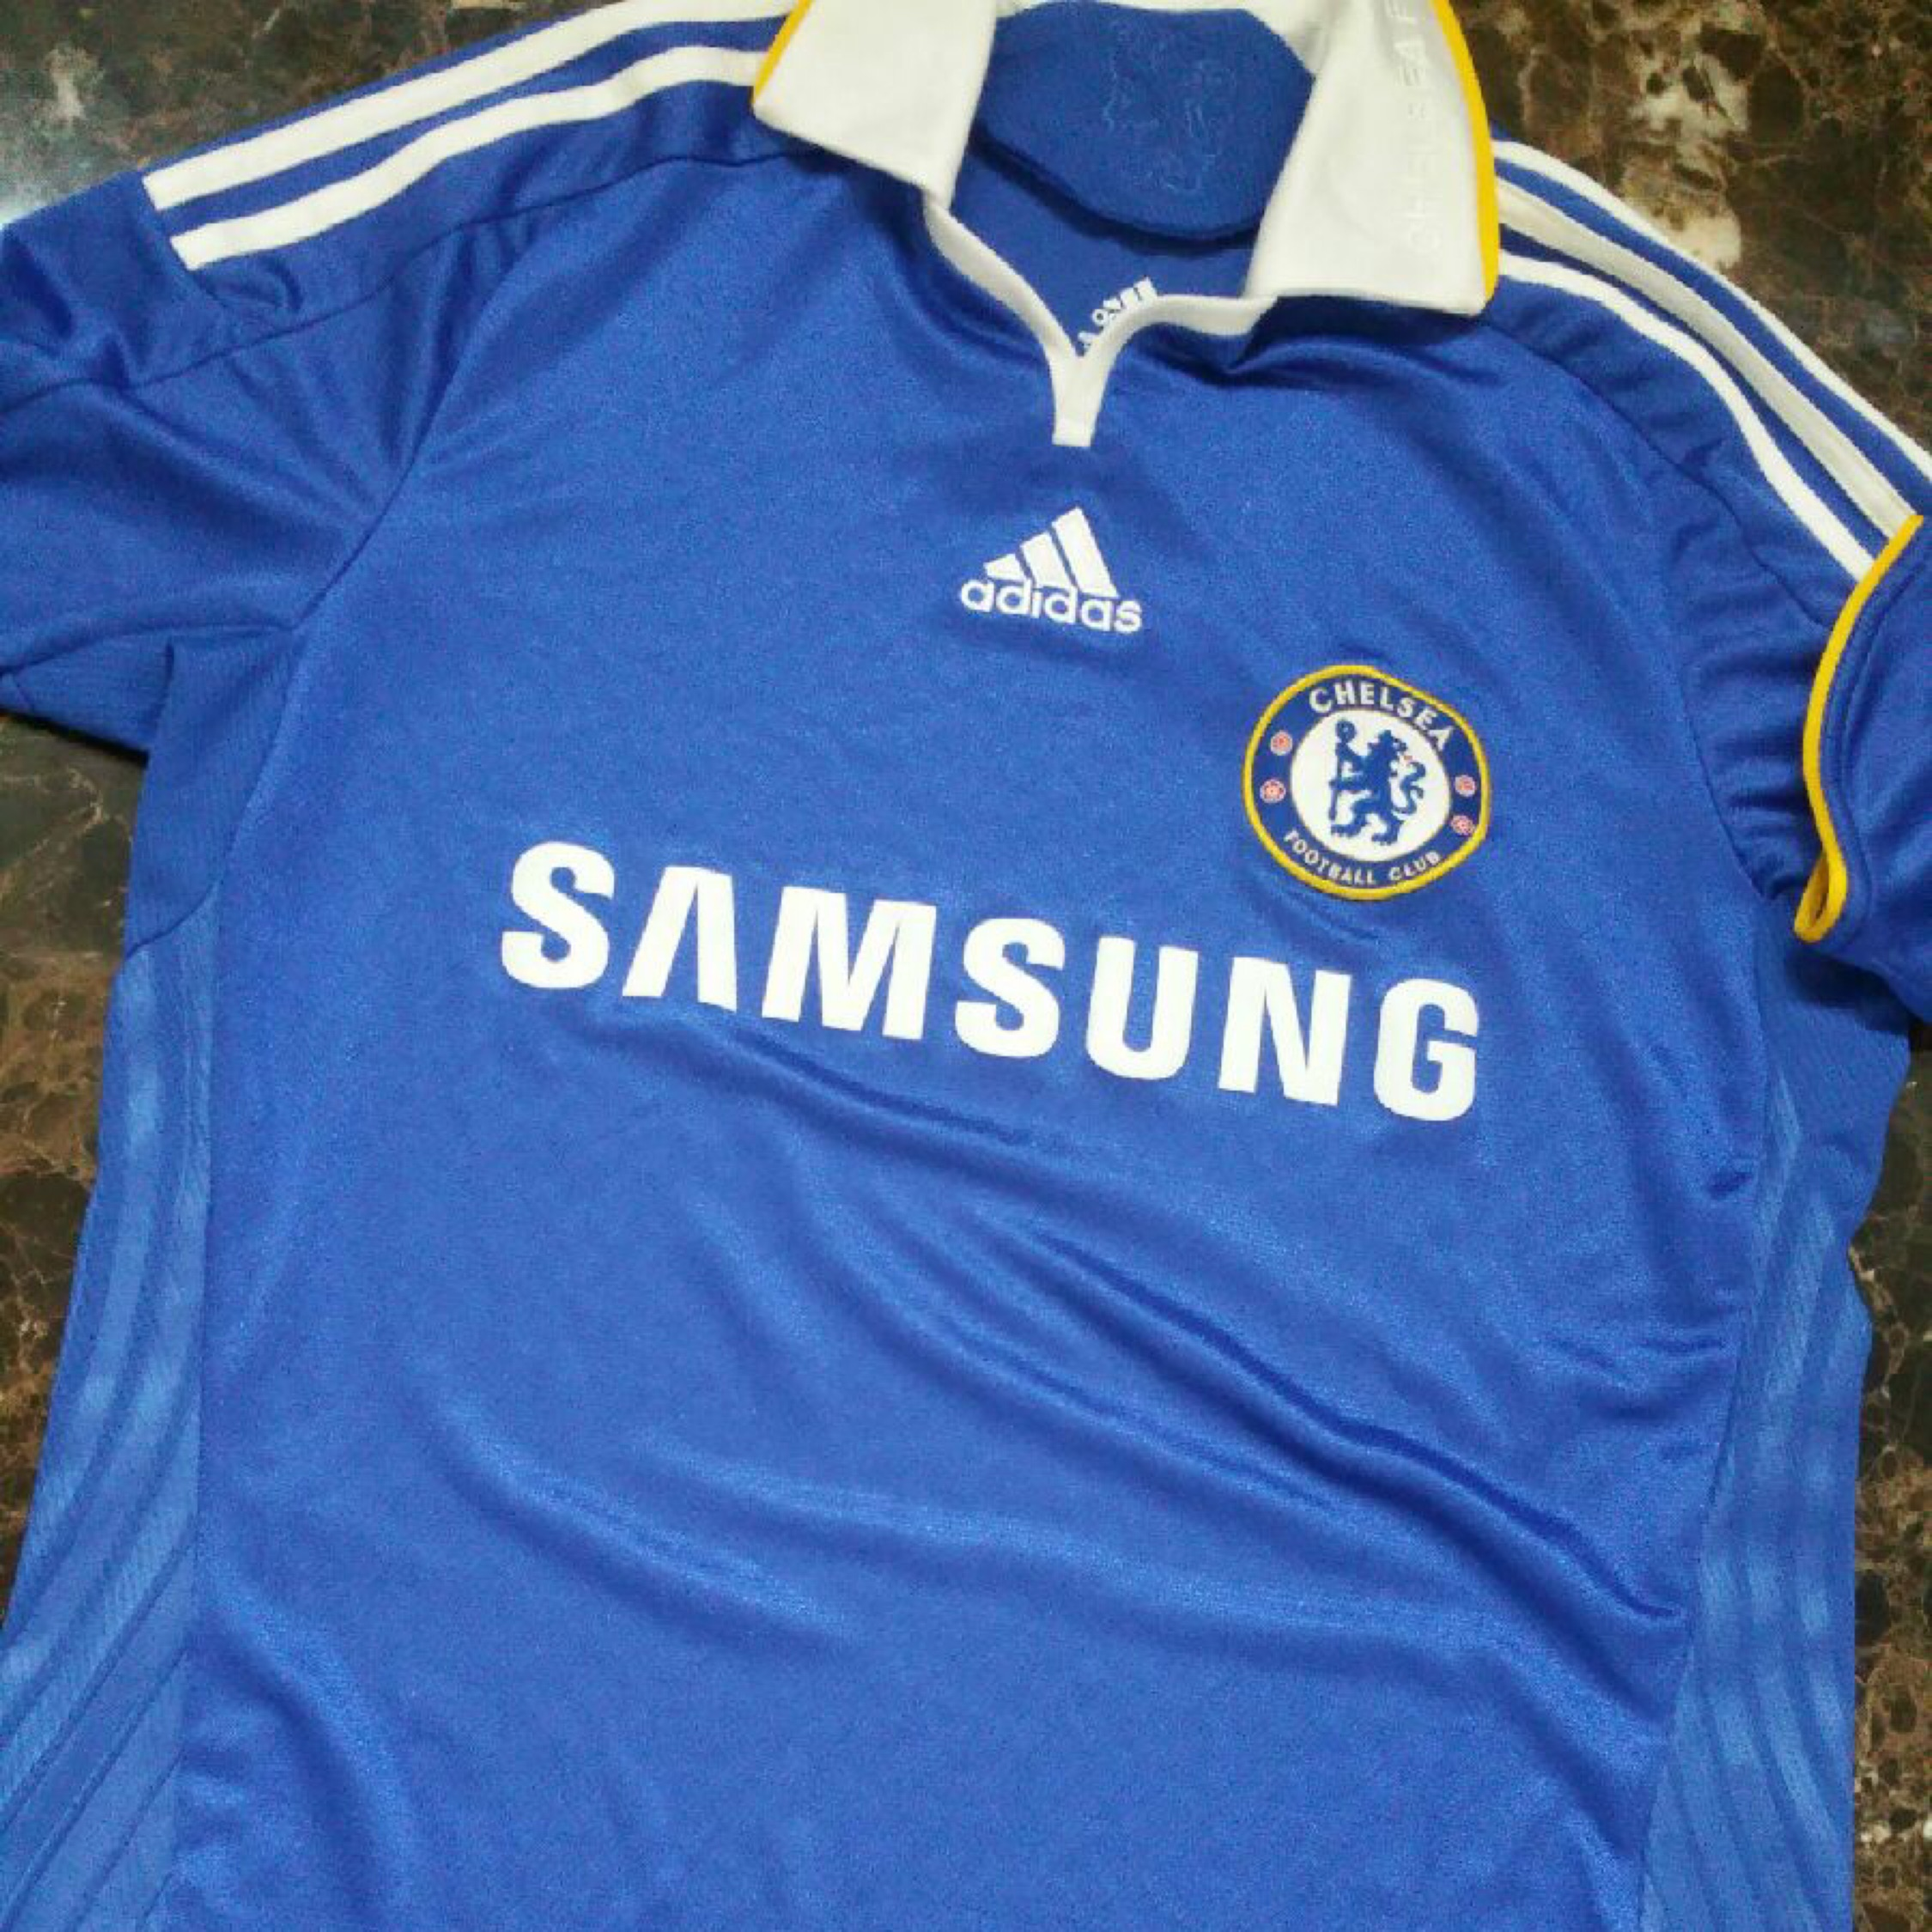 the best attitude 9a803 aca5b Adidas Chelsea Football Soccer Jersey S